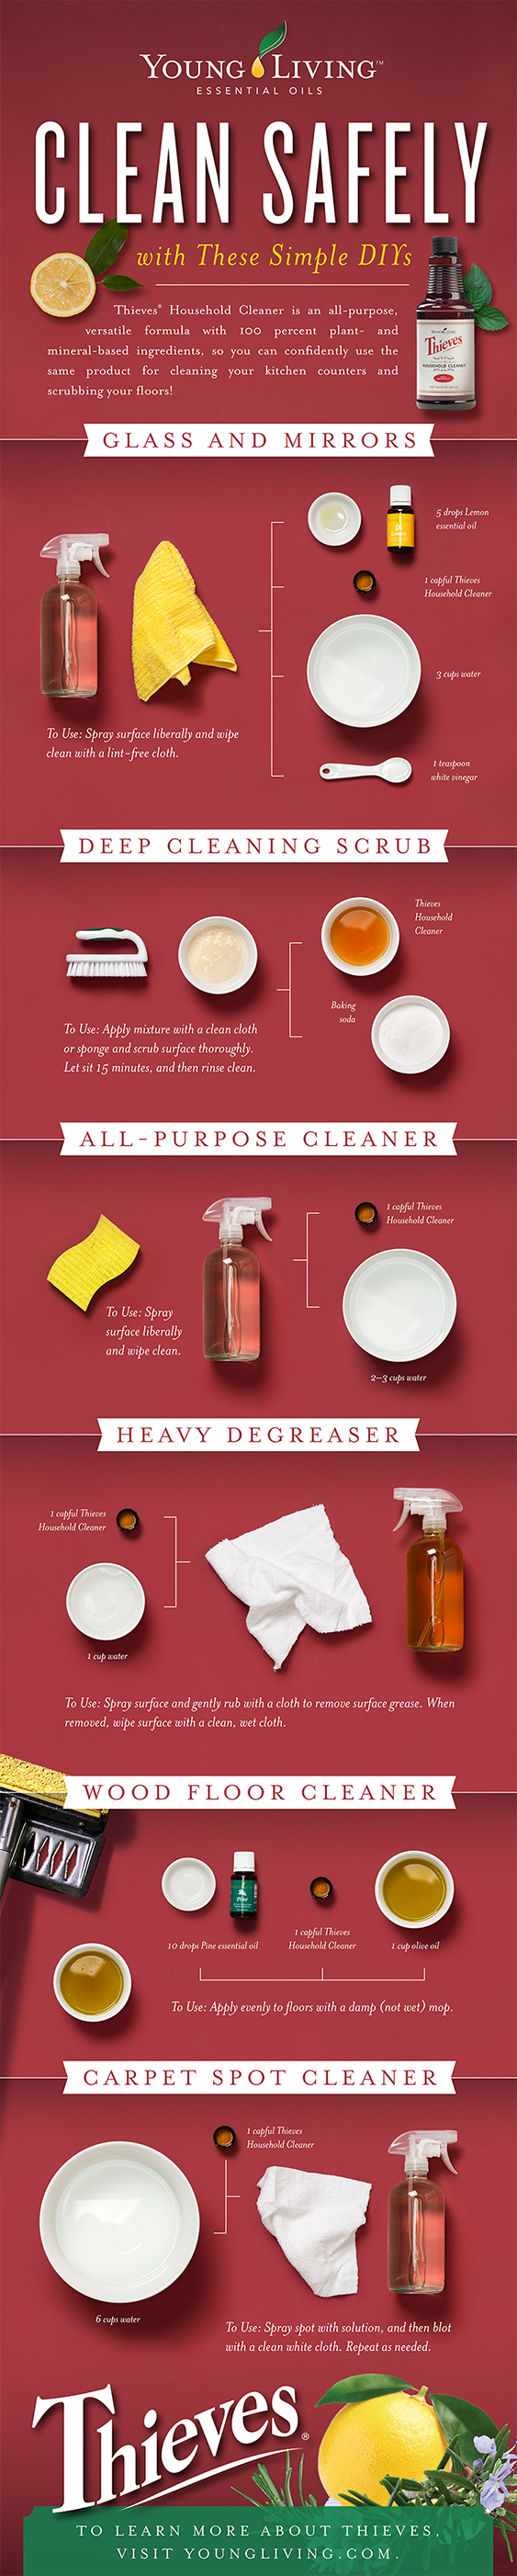 Clean Safely with Young Living - DIY Cleaning Recipes